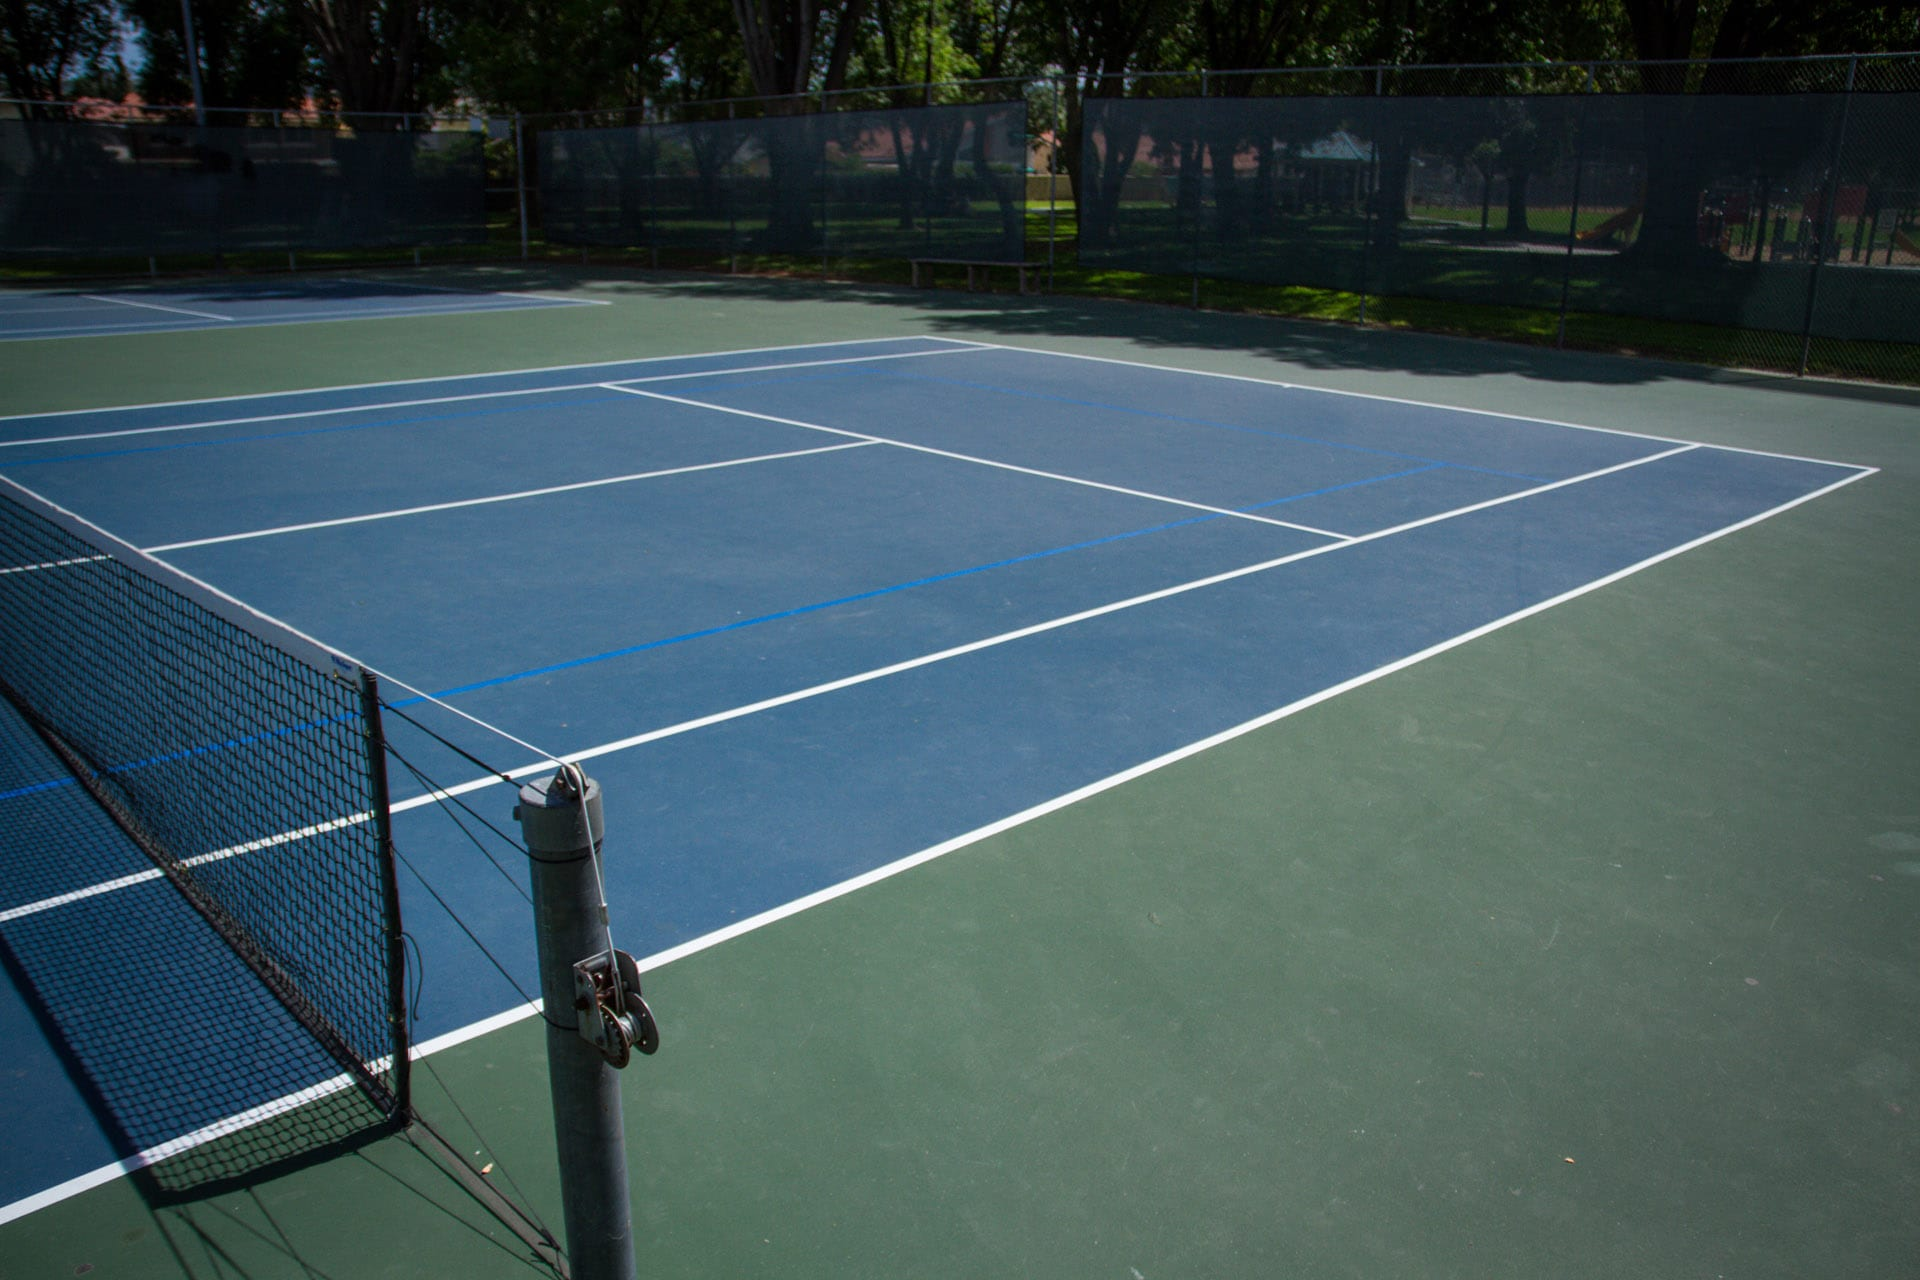 A picture of Rowland Heights Tennis Courts